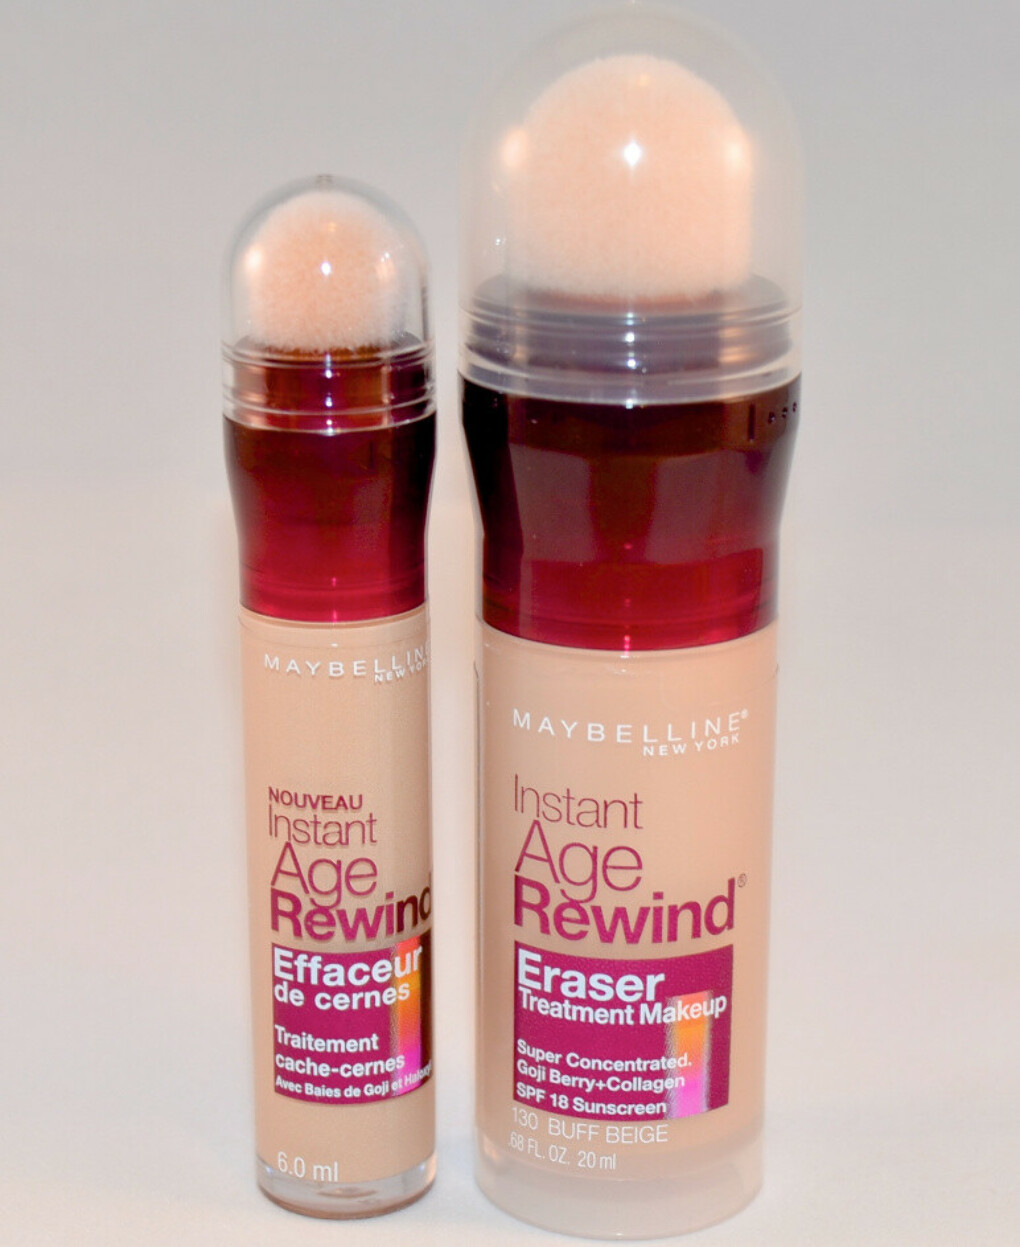 Maybelline Eraser Foundation in Ivory